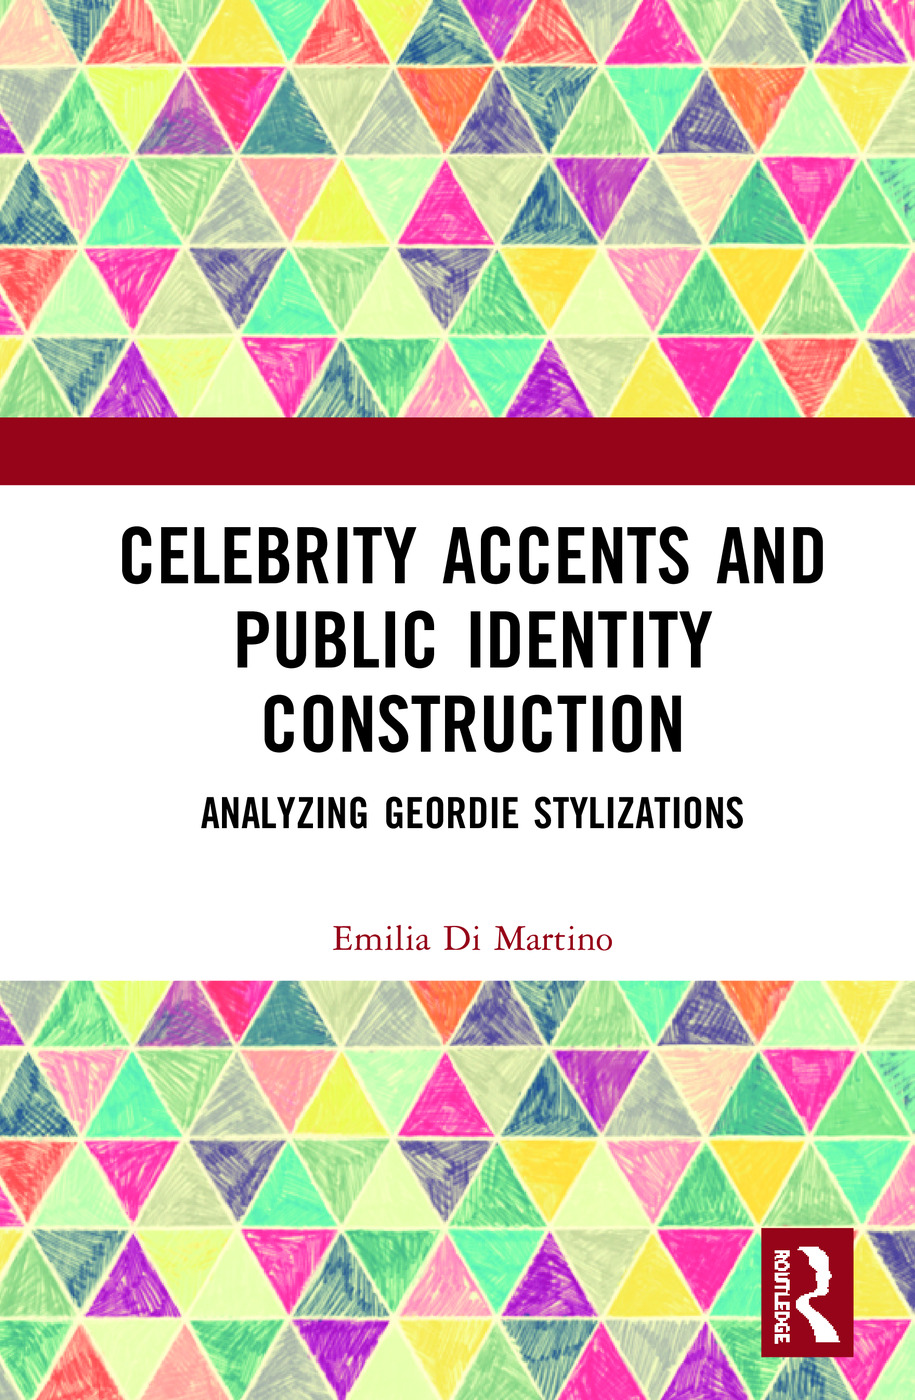 Celebrity Accents and Public Identity Construction: Analyzing Geordie Stylizations book cover